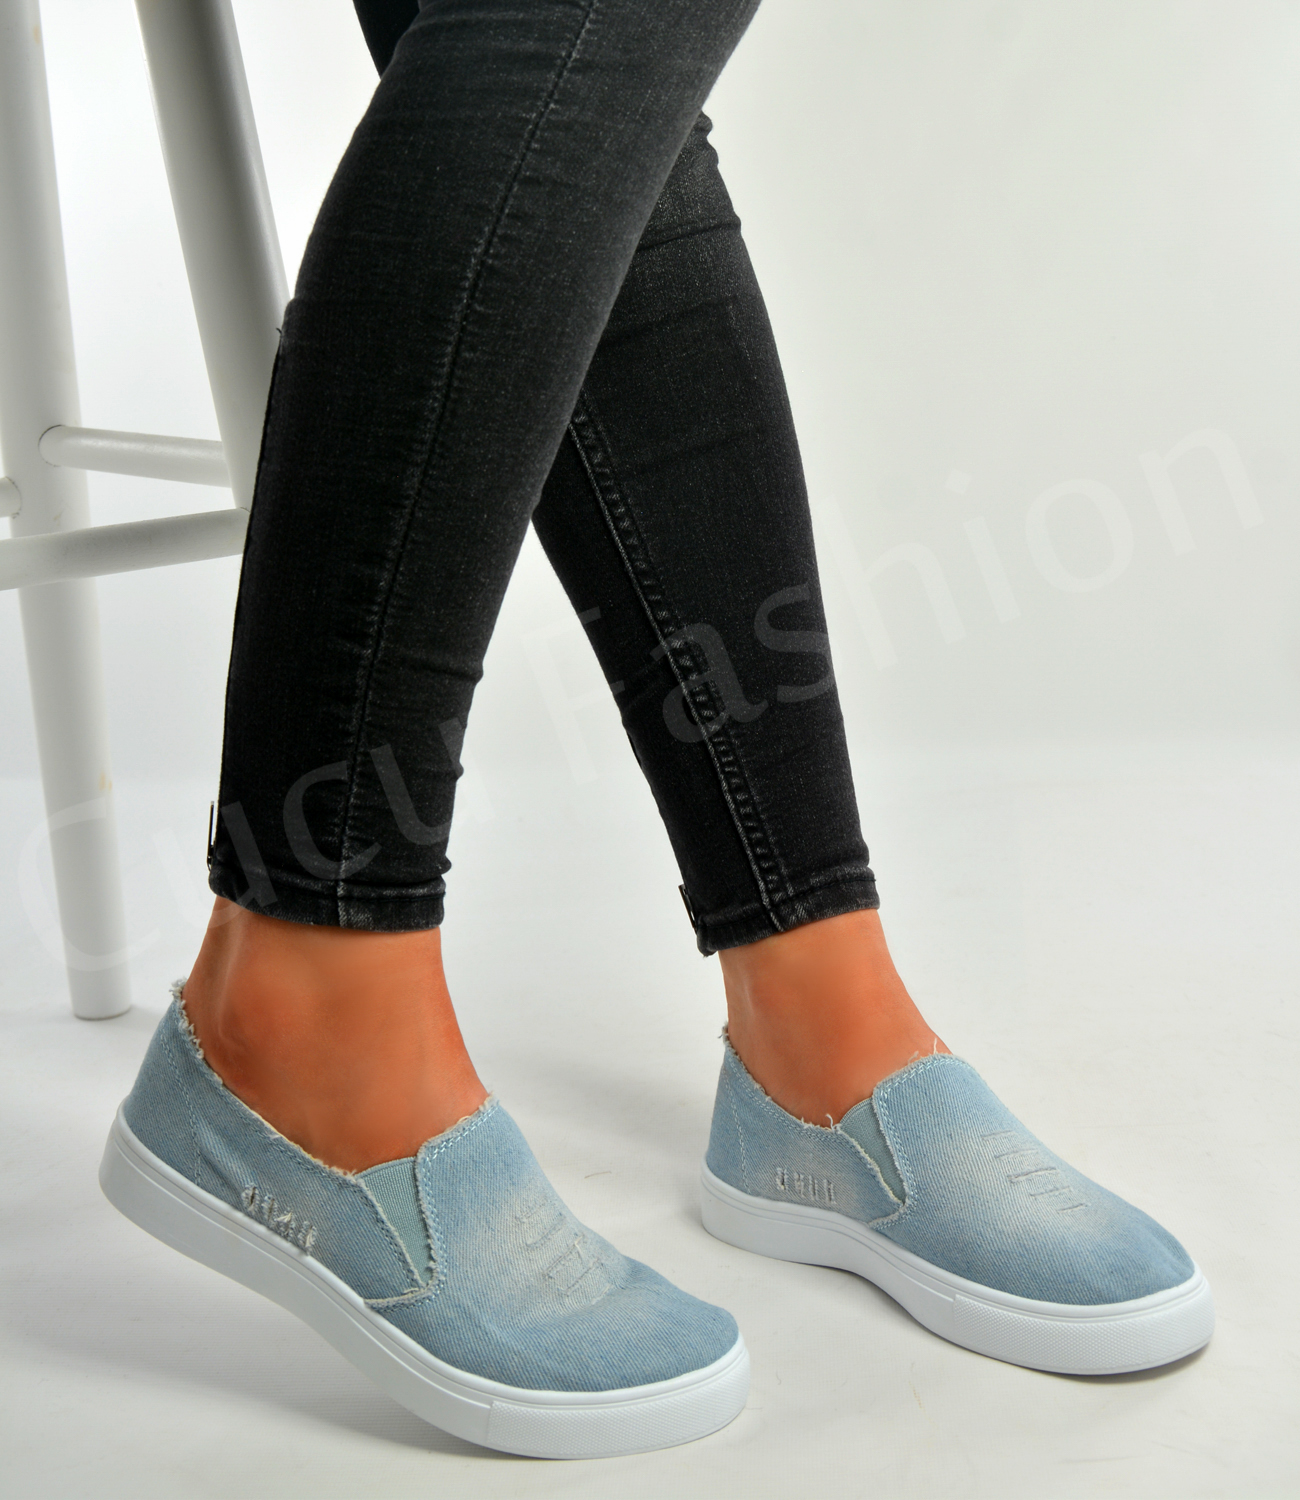 Womens Casual Canvas Slip On Shoes